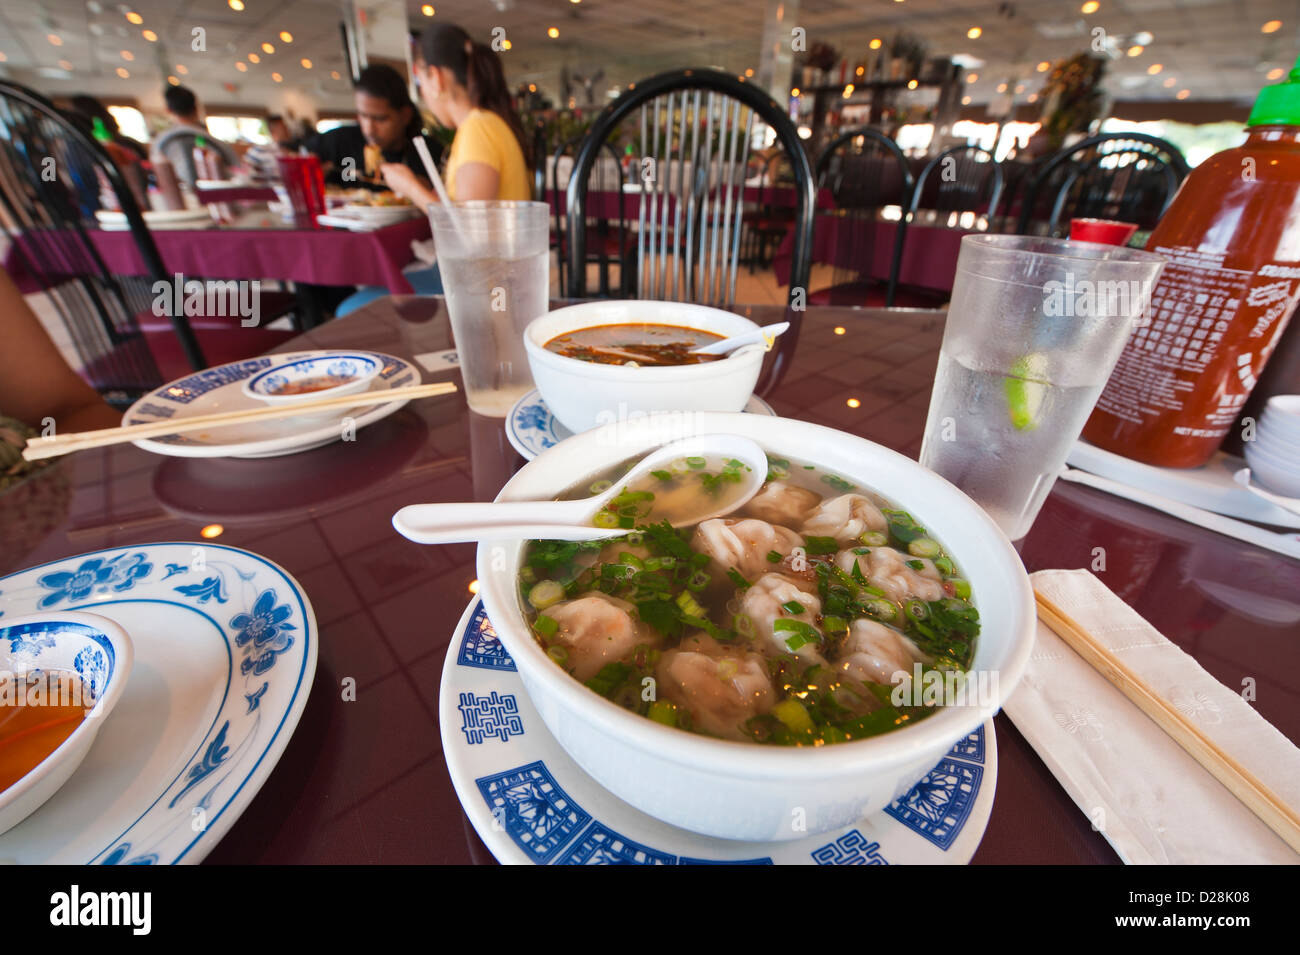 Stock Photo - USA, Florida. Pho 88 Vietnamese Restaurant, Orlando, Florida